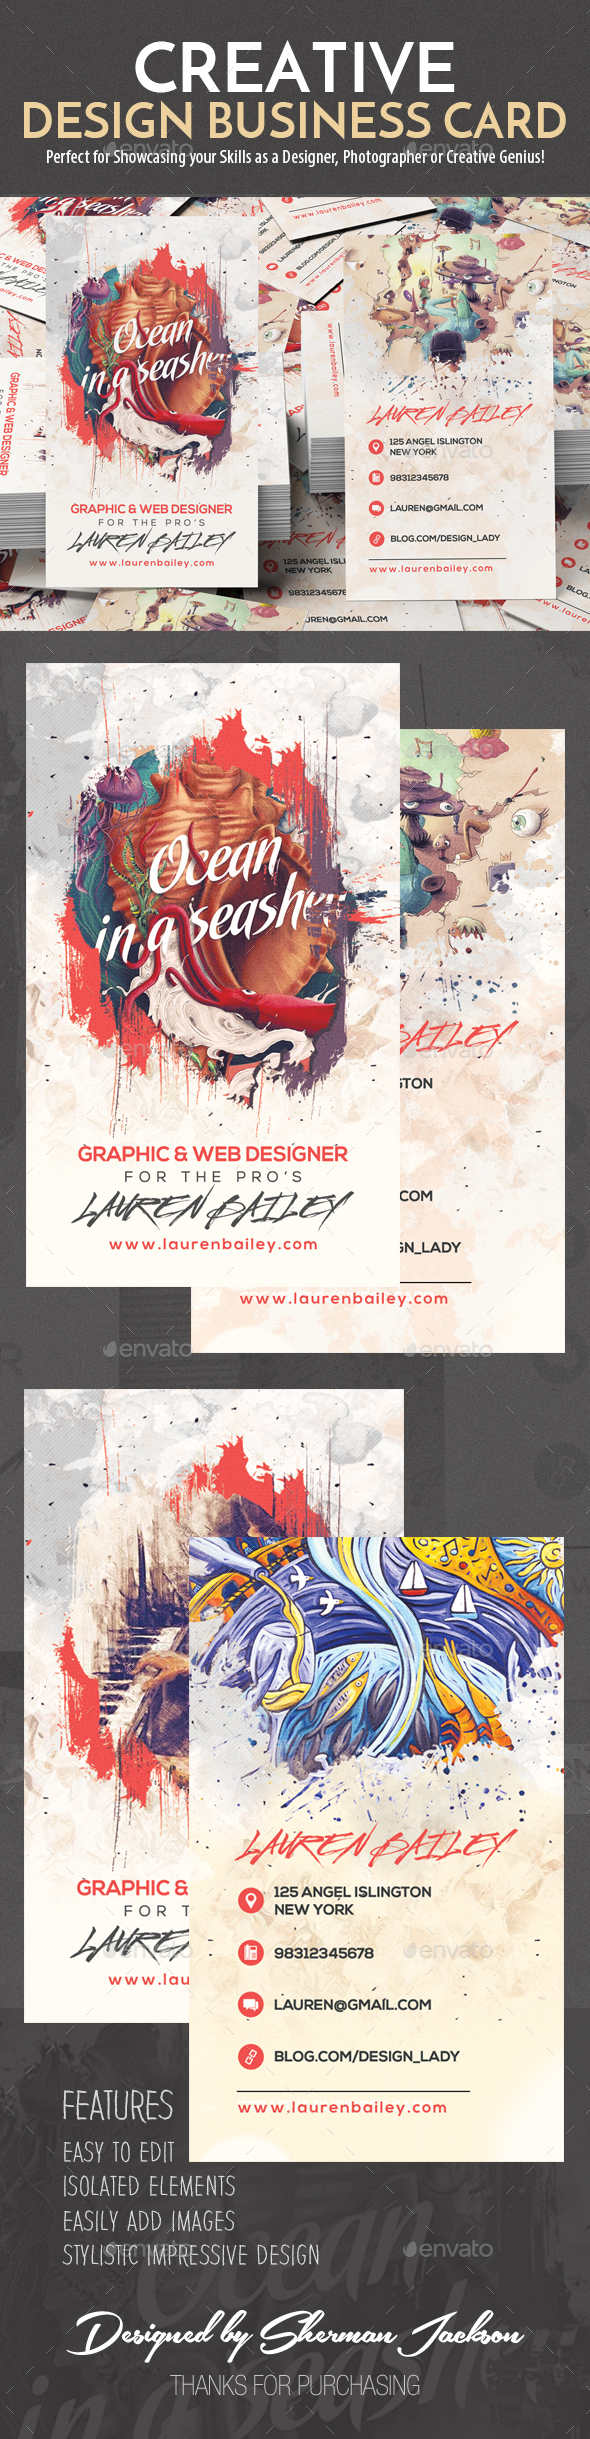 GraphicRiver Creative Design Business Card 21096605